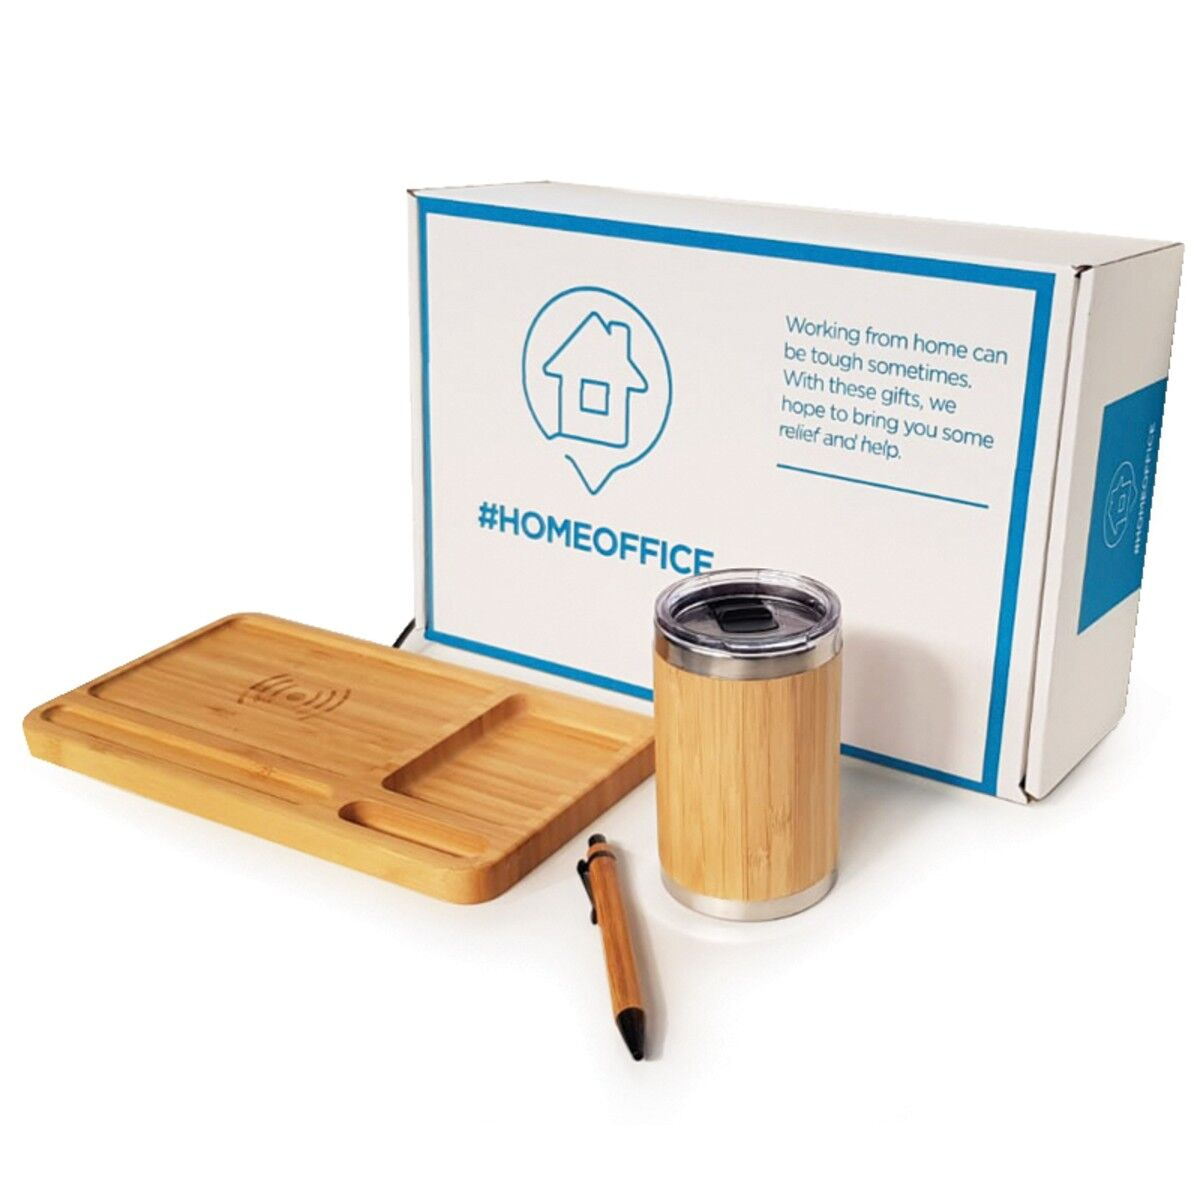 Work From Home Recharging Kit